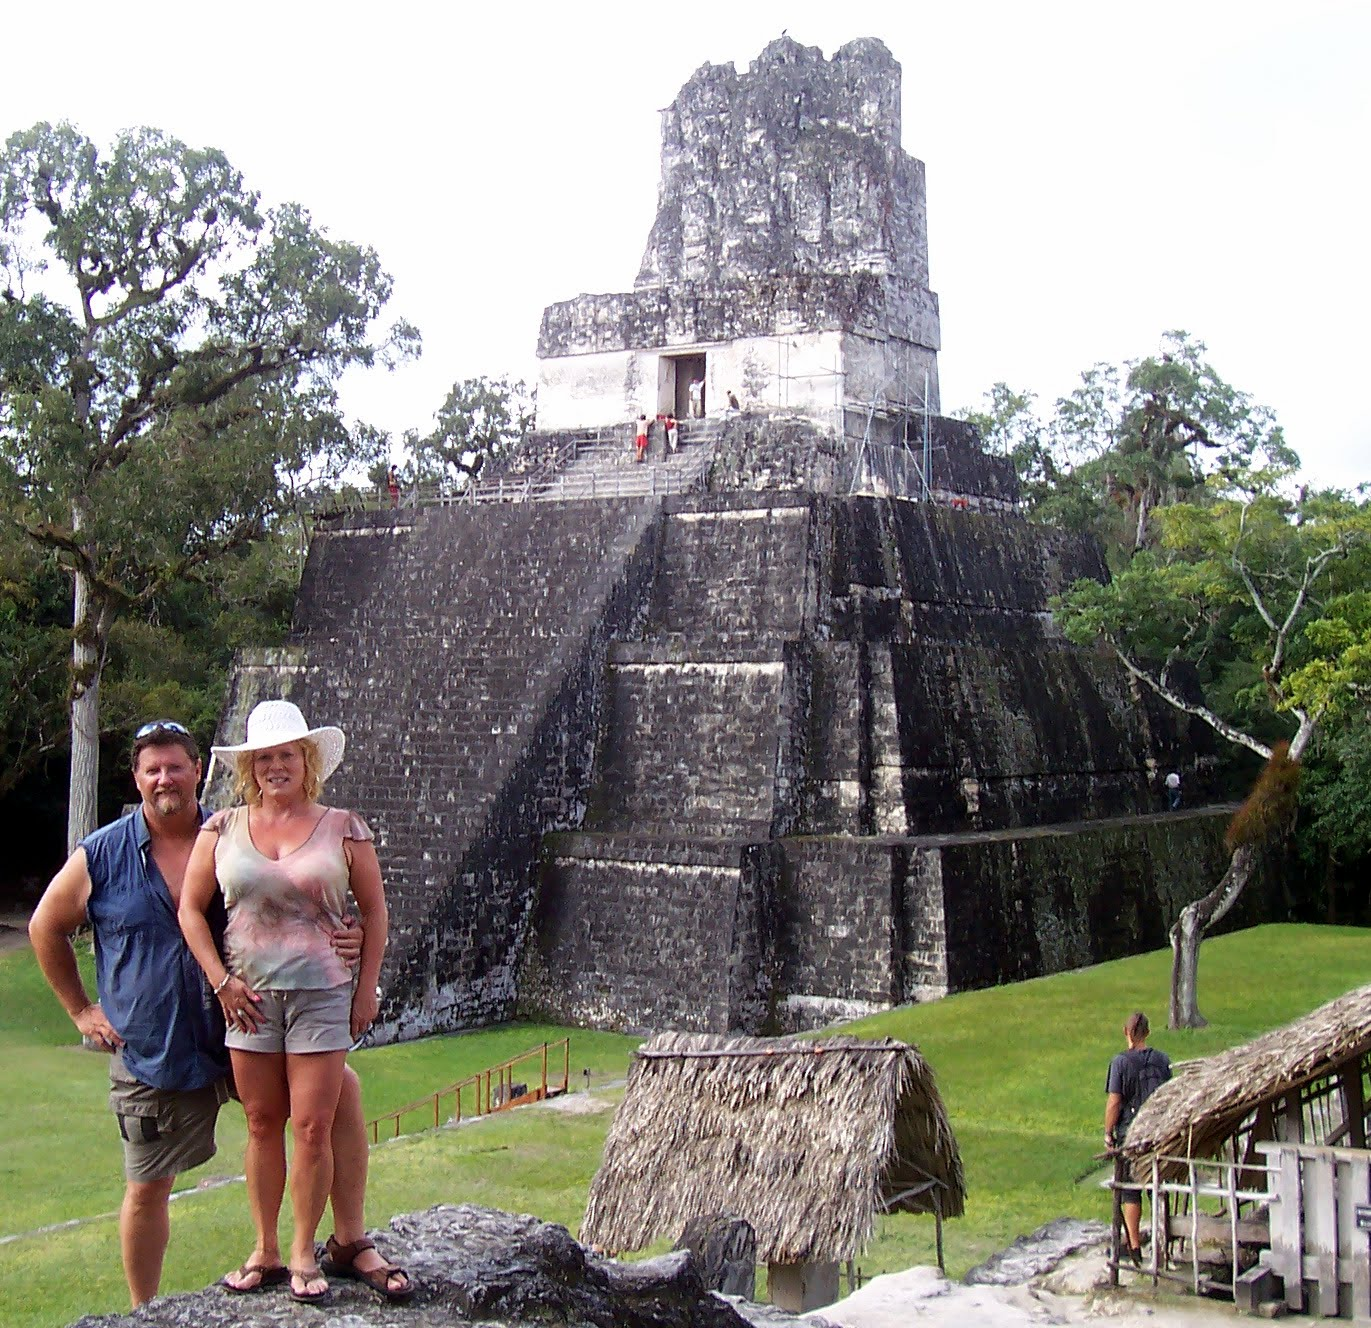 Ed and his wife at the Tikal Ruins near Belize City